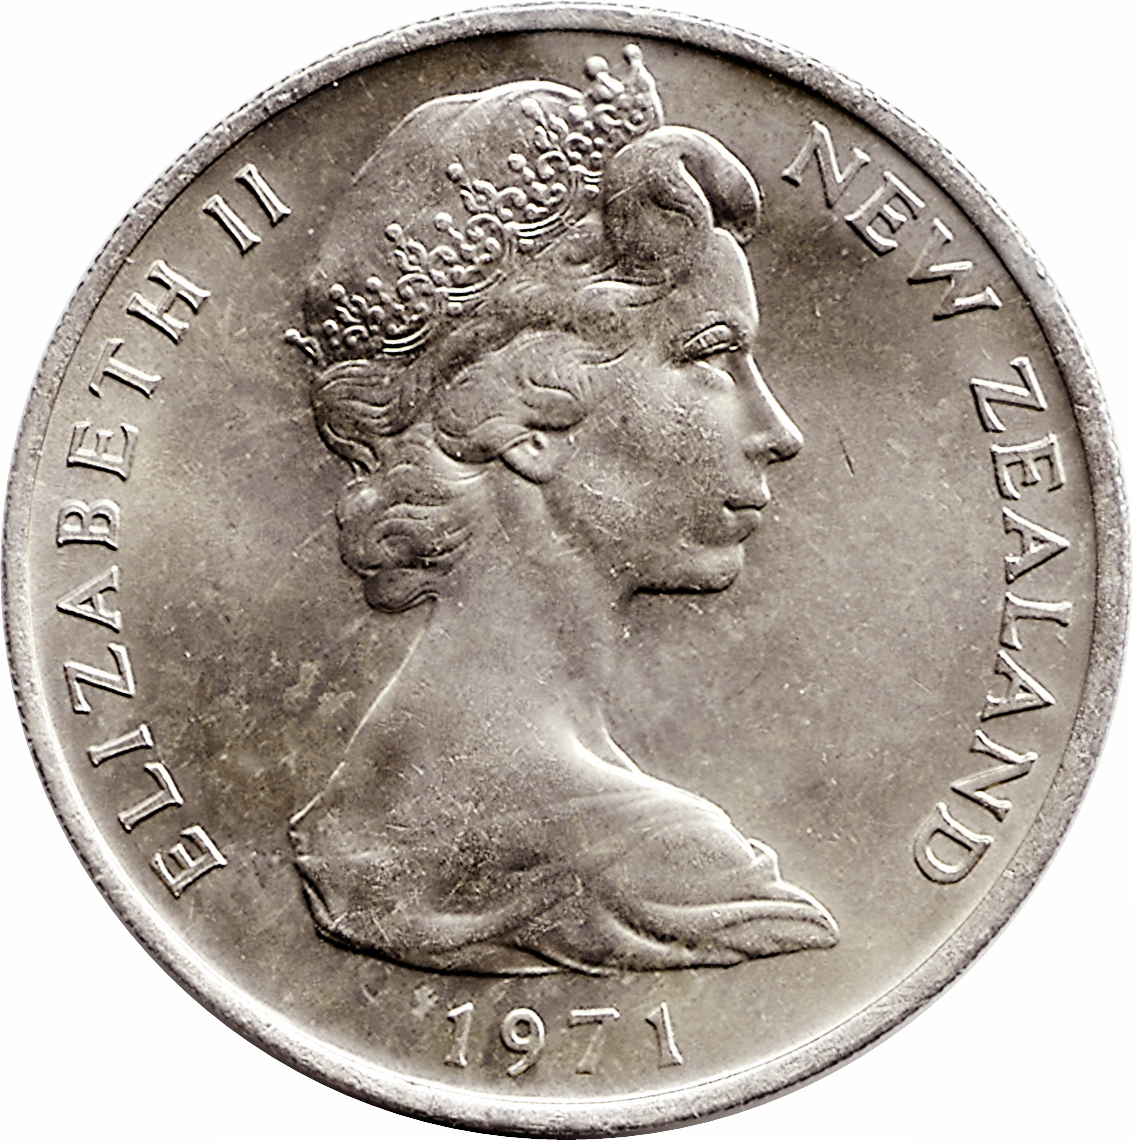 20 Cents - Elizabeth II (2nd portrait) - New Zealand – Numista